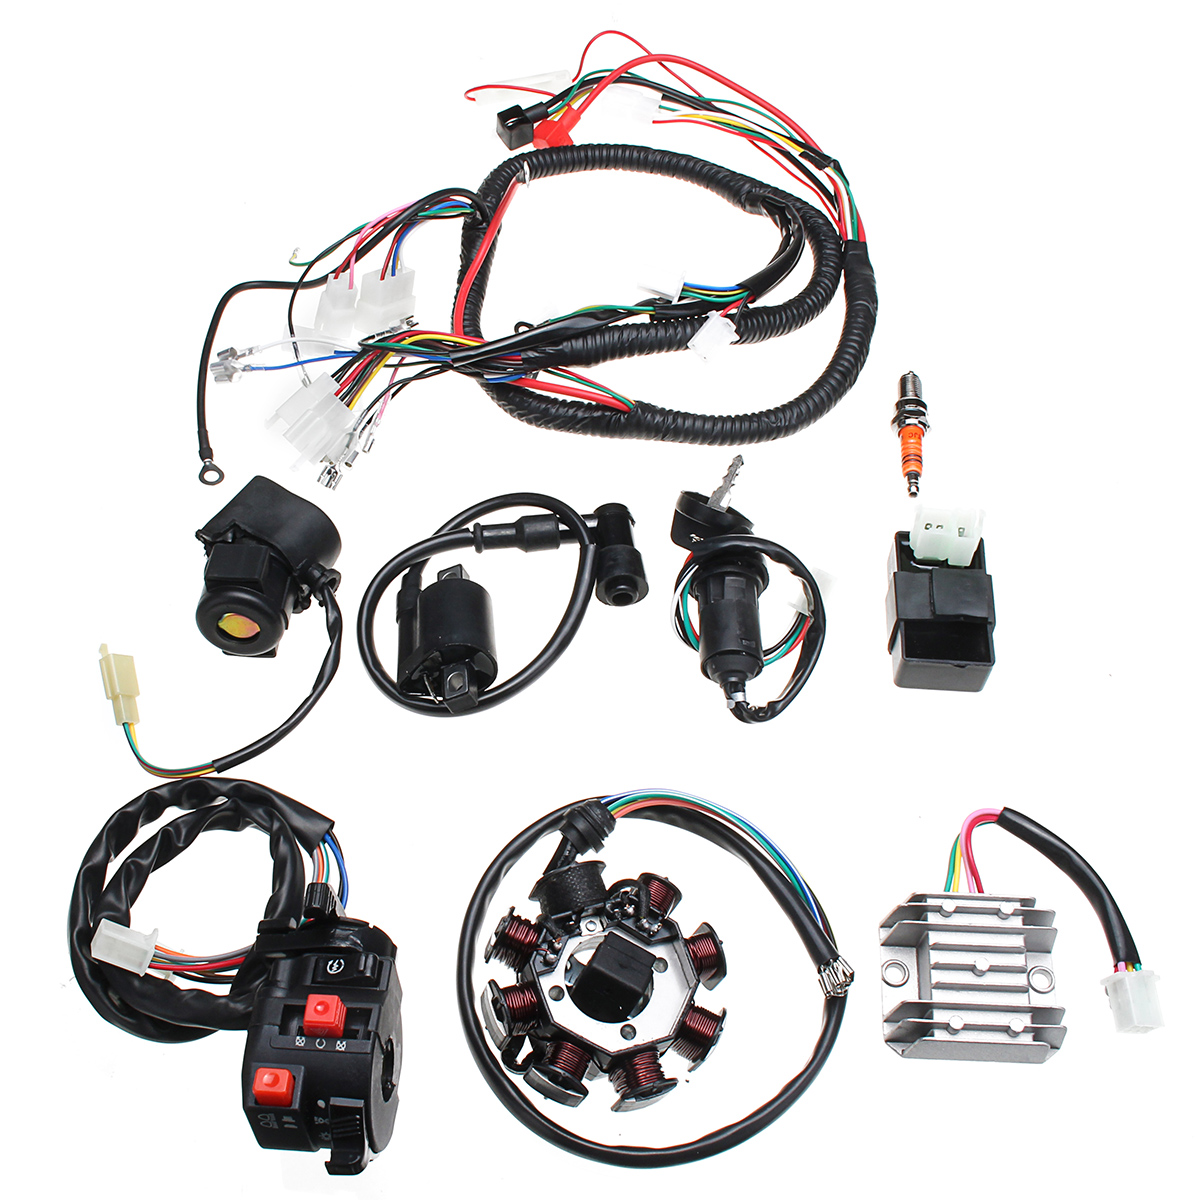 hight resolution of electric wiring harness wire loom cdi motor stator full set for atv quad 150 200